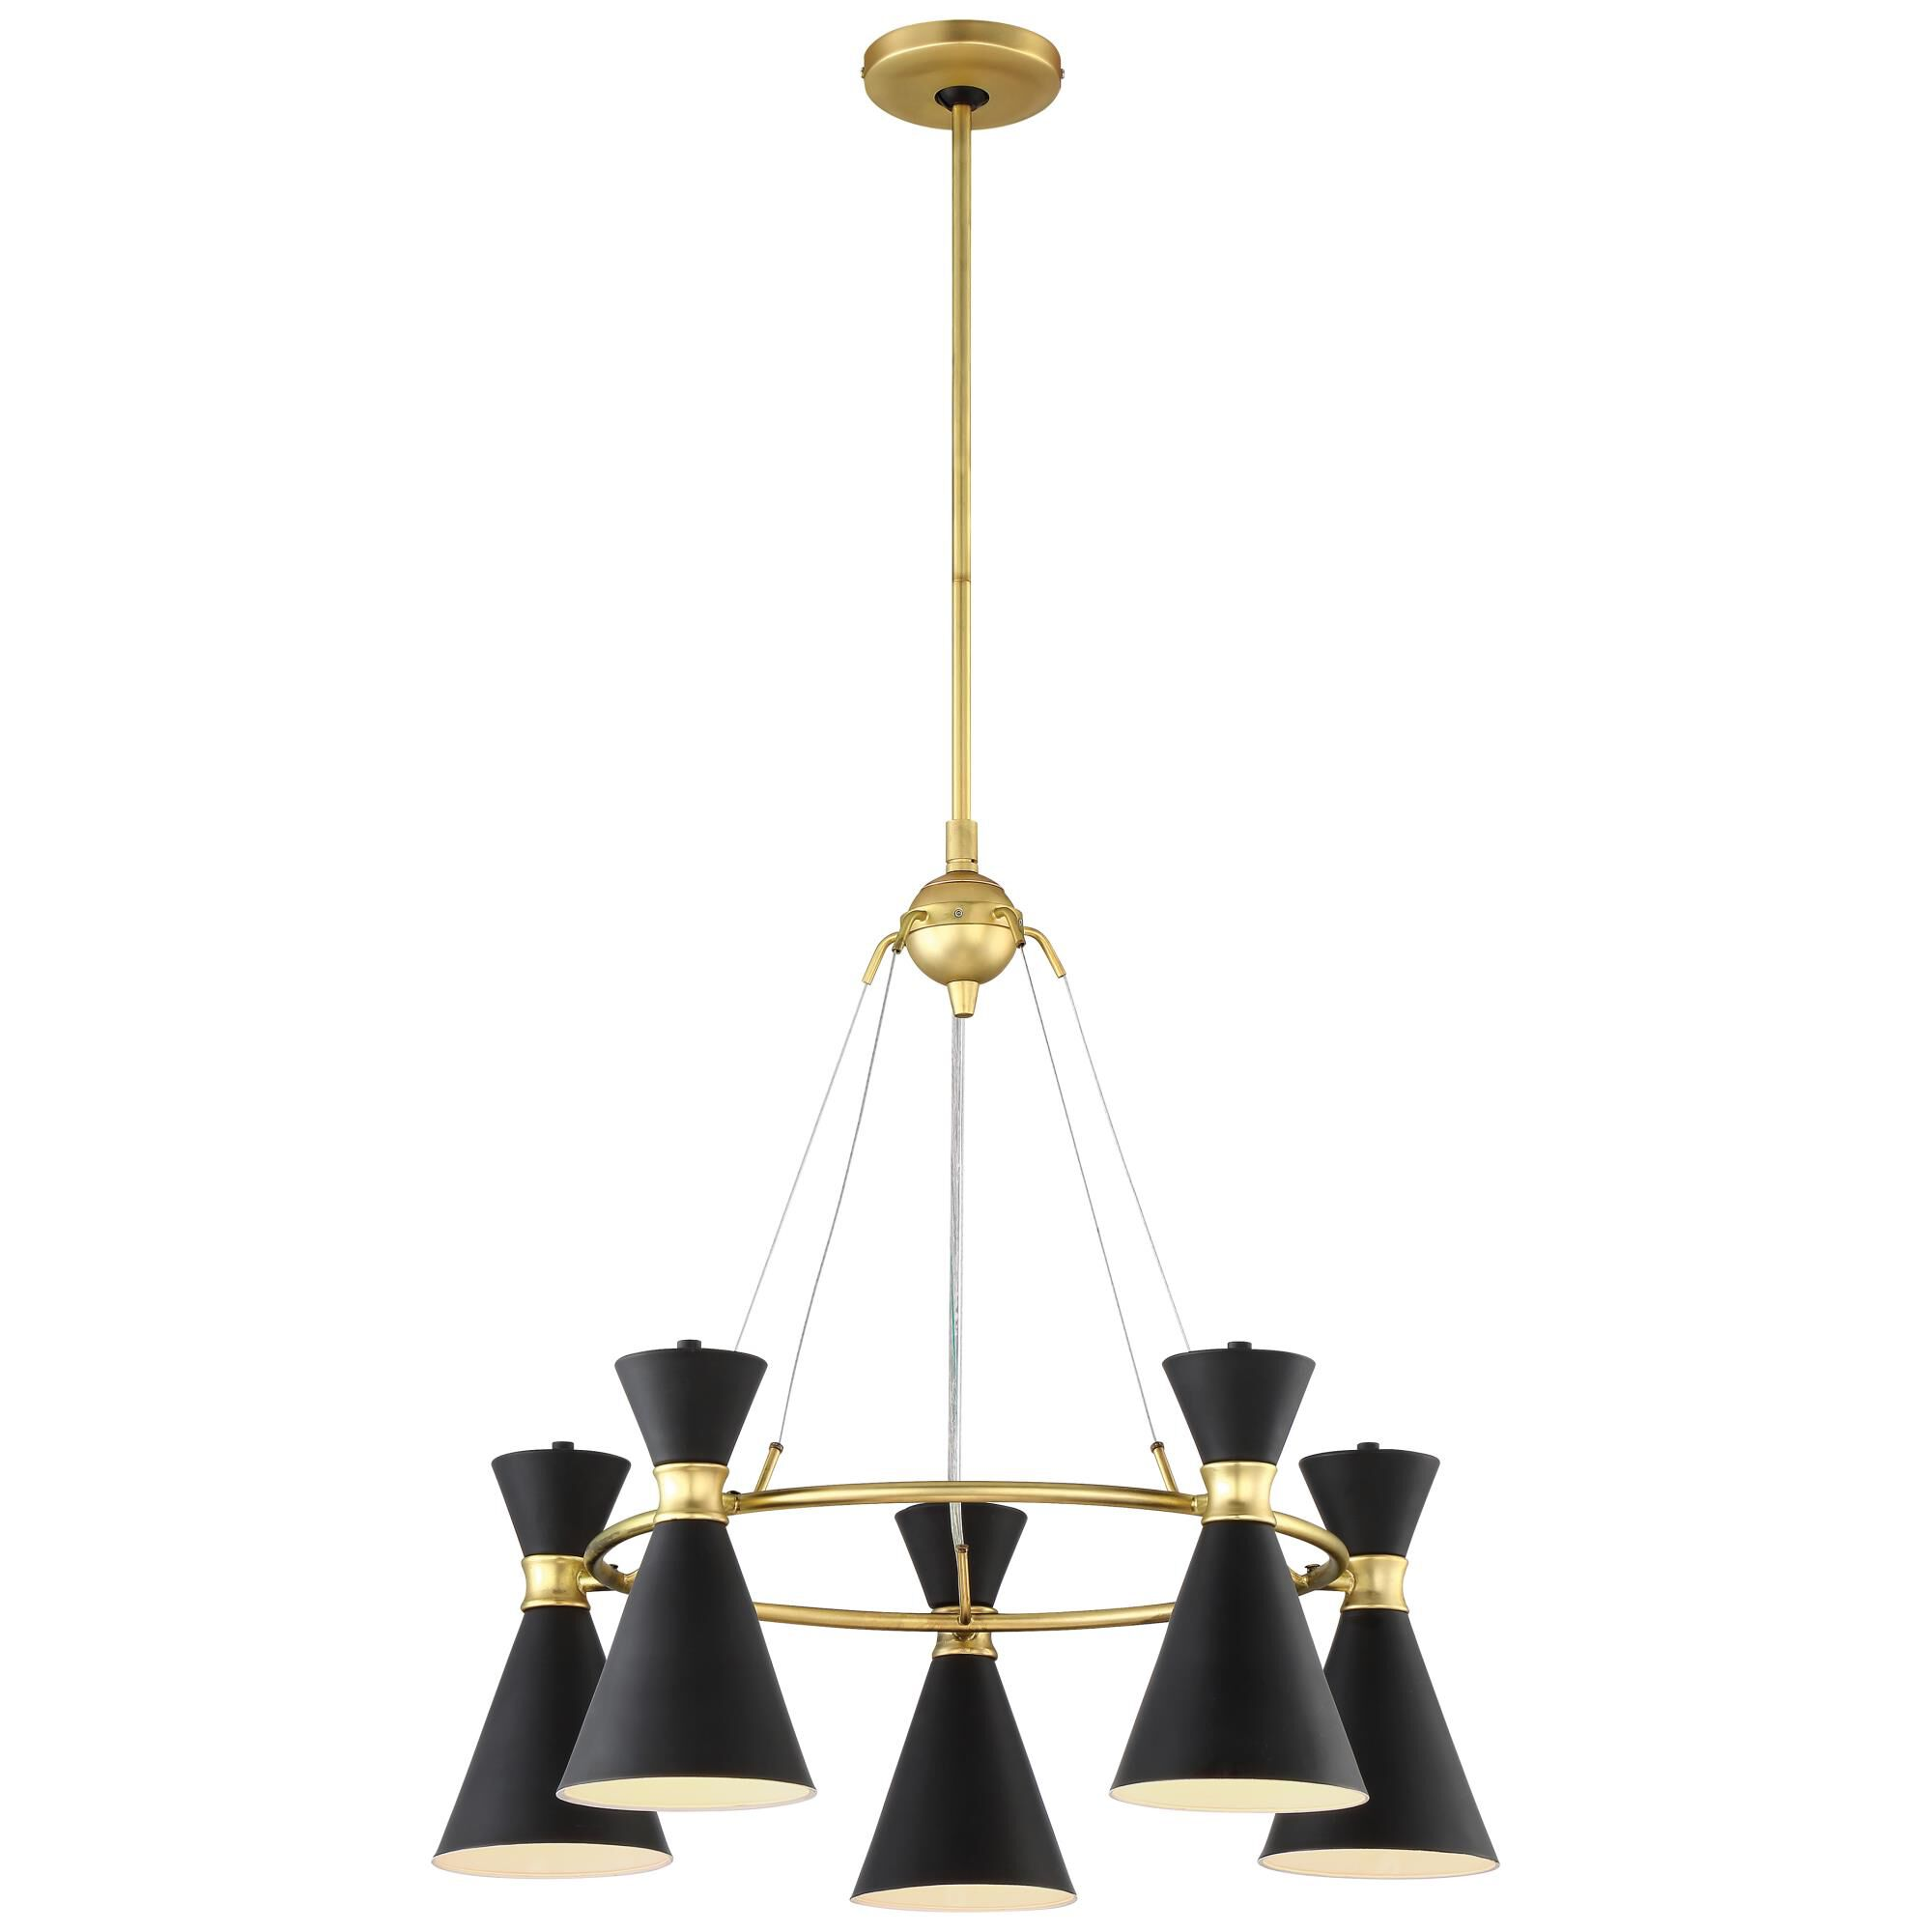 Kovacs Conic 26 Inch 5 Light Chandelier Conic - P1825-248 - Transitional